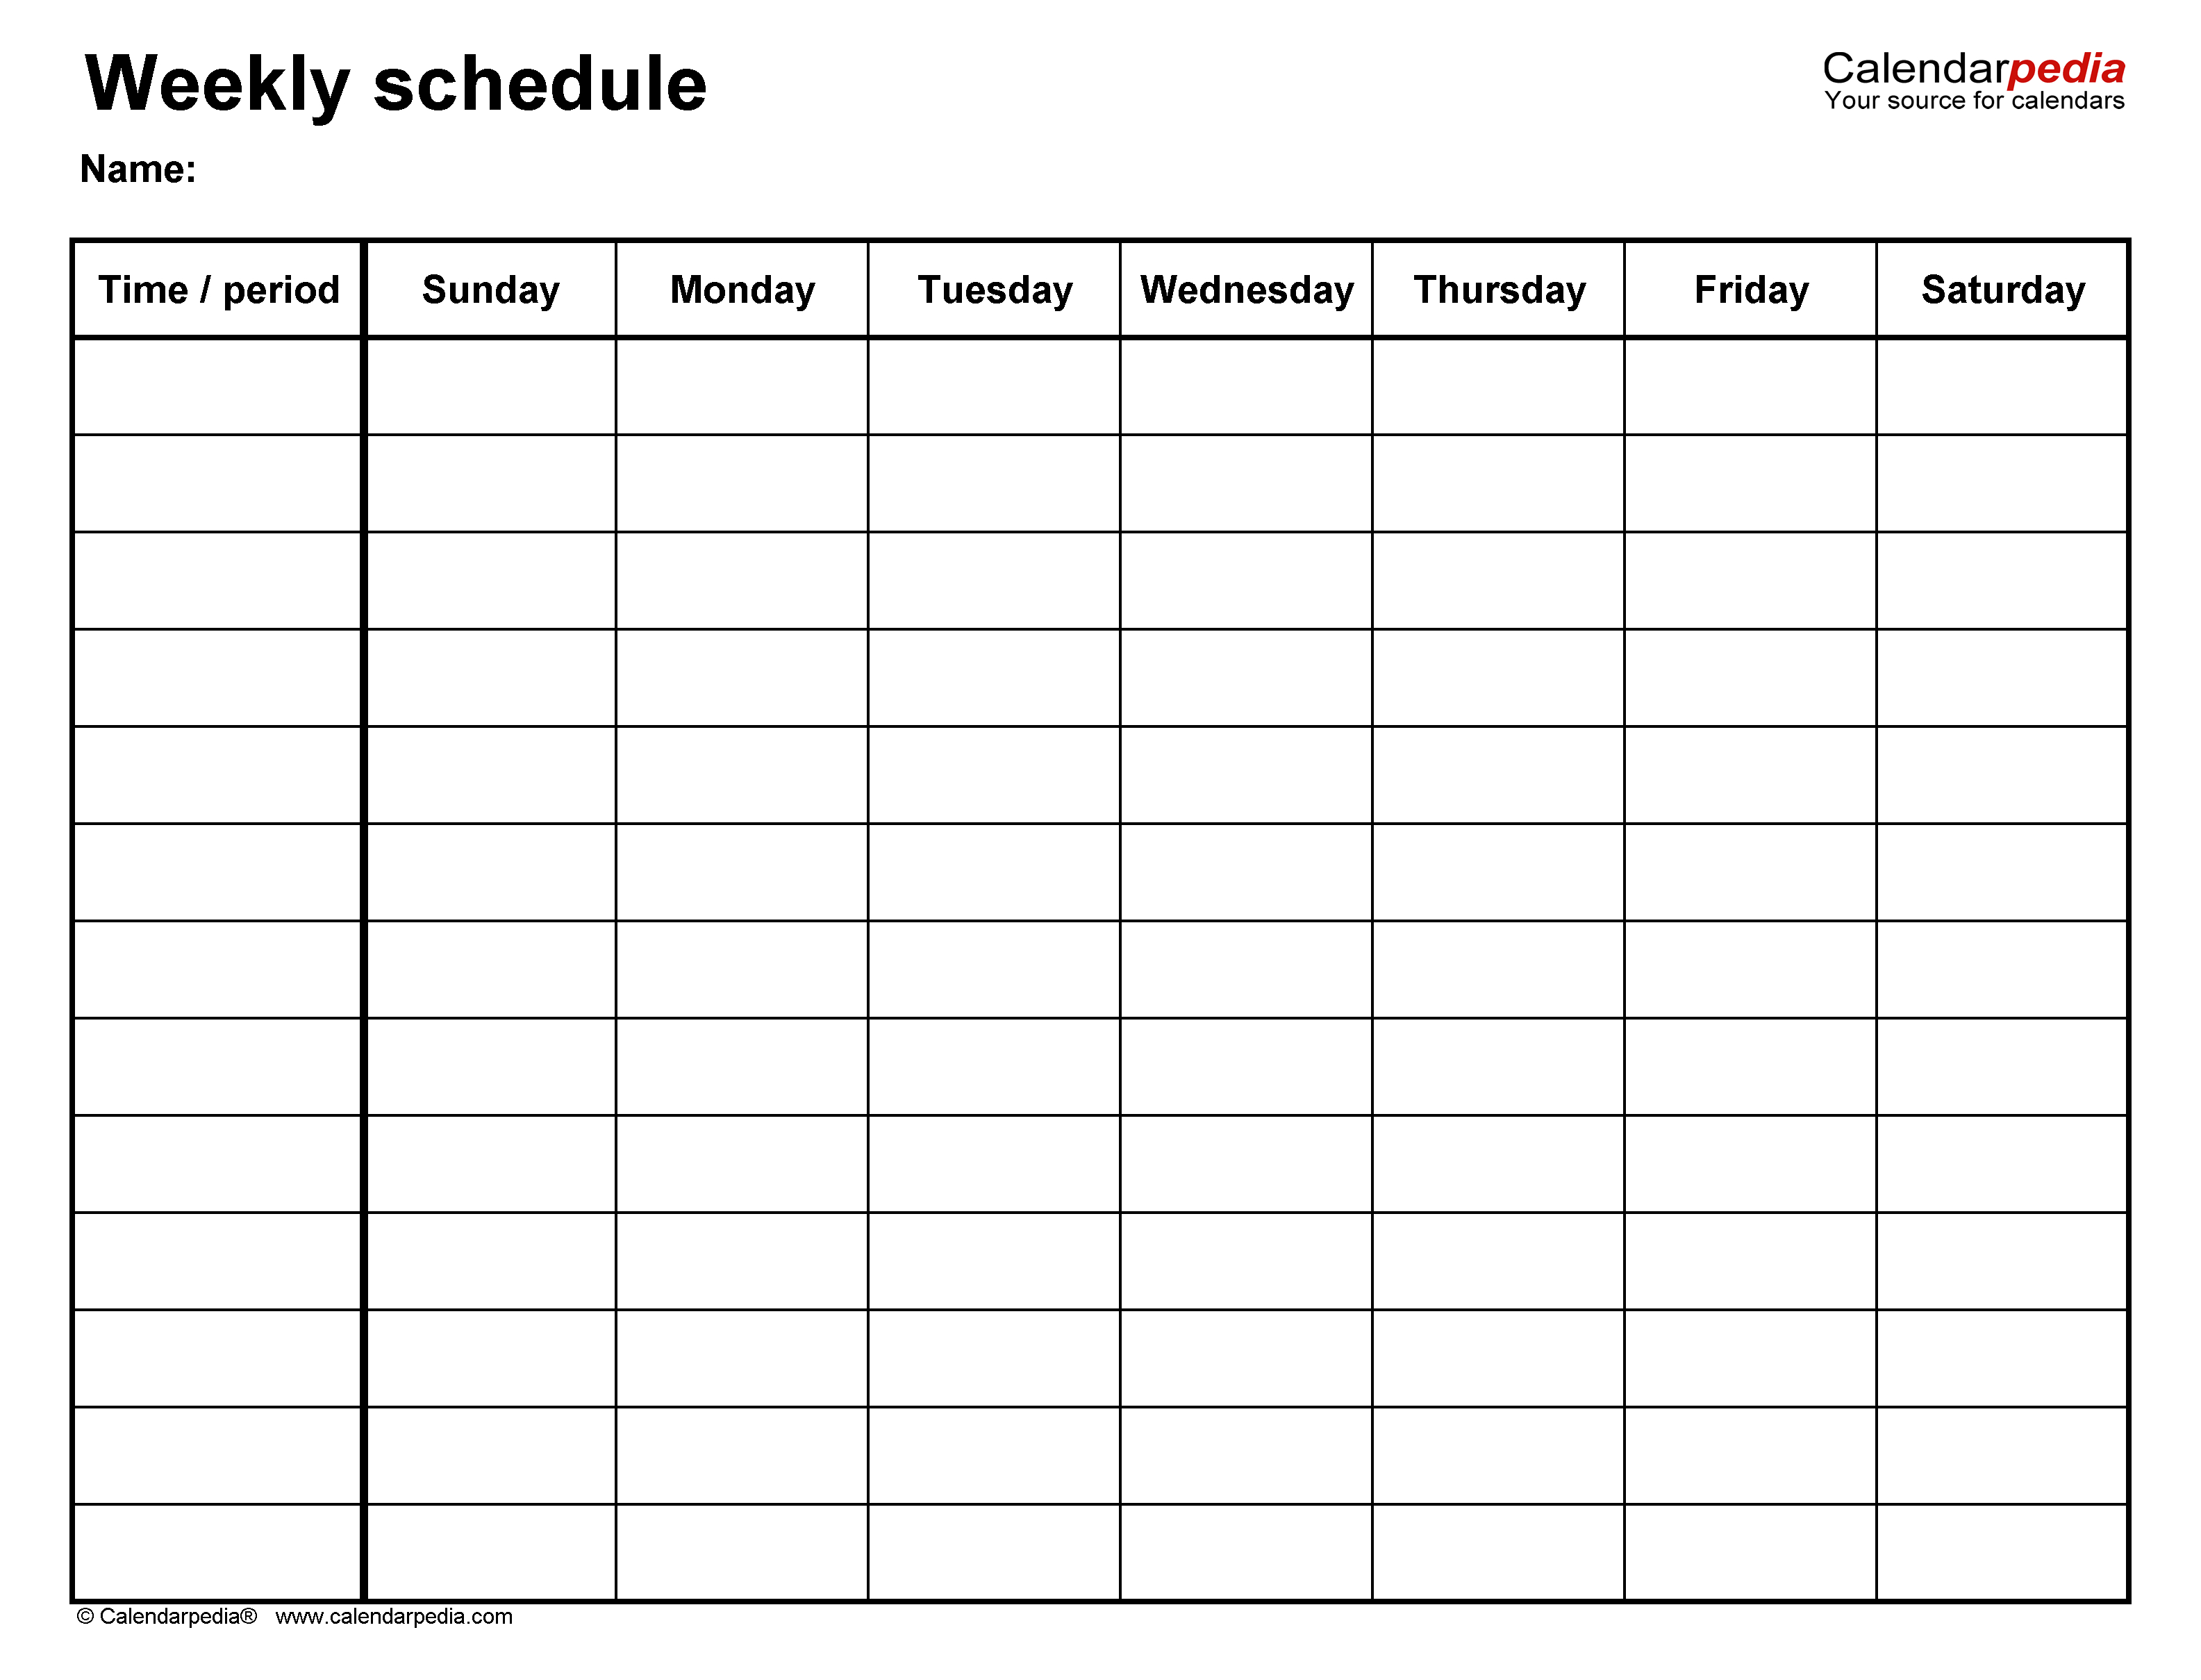 Free Weekly Schedule Templates For Word - 18 Templates inside Sunday Through Saturday Calendar